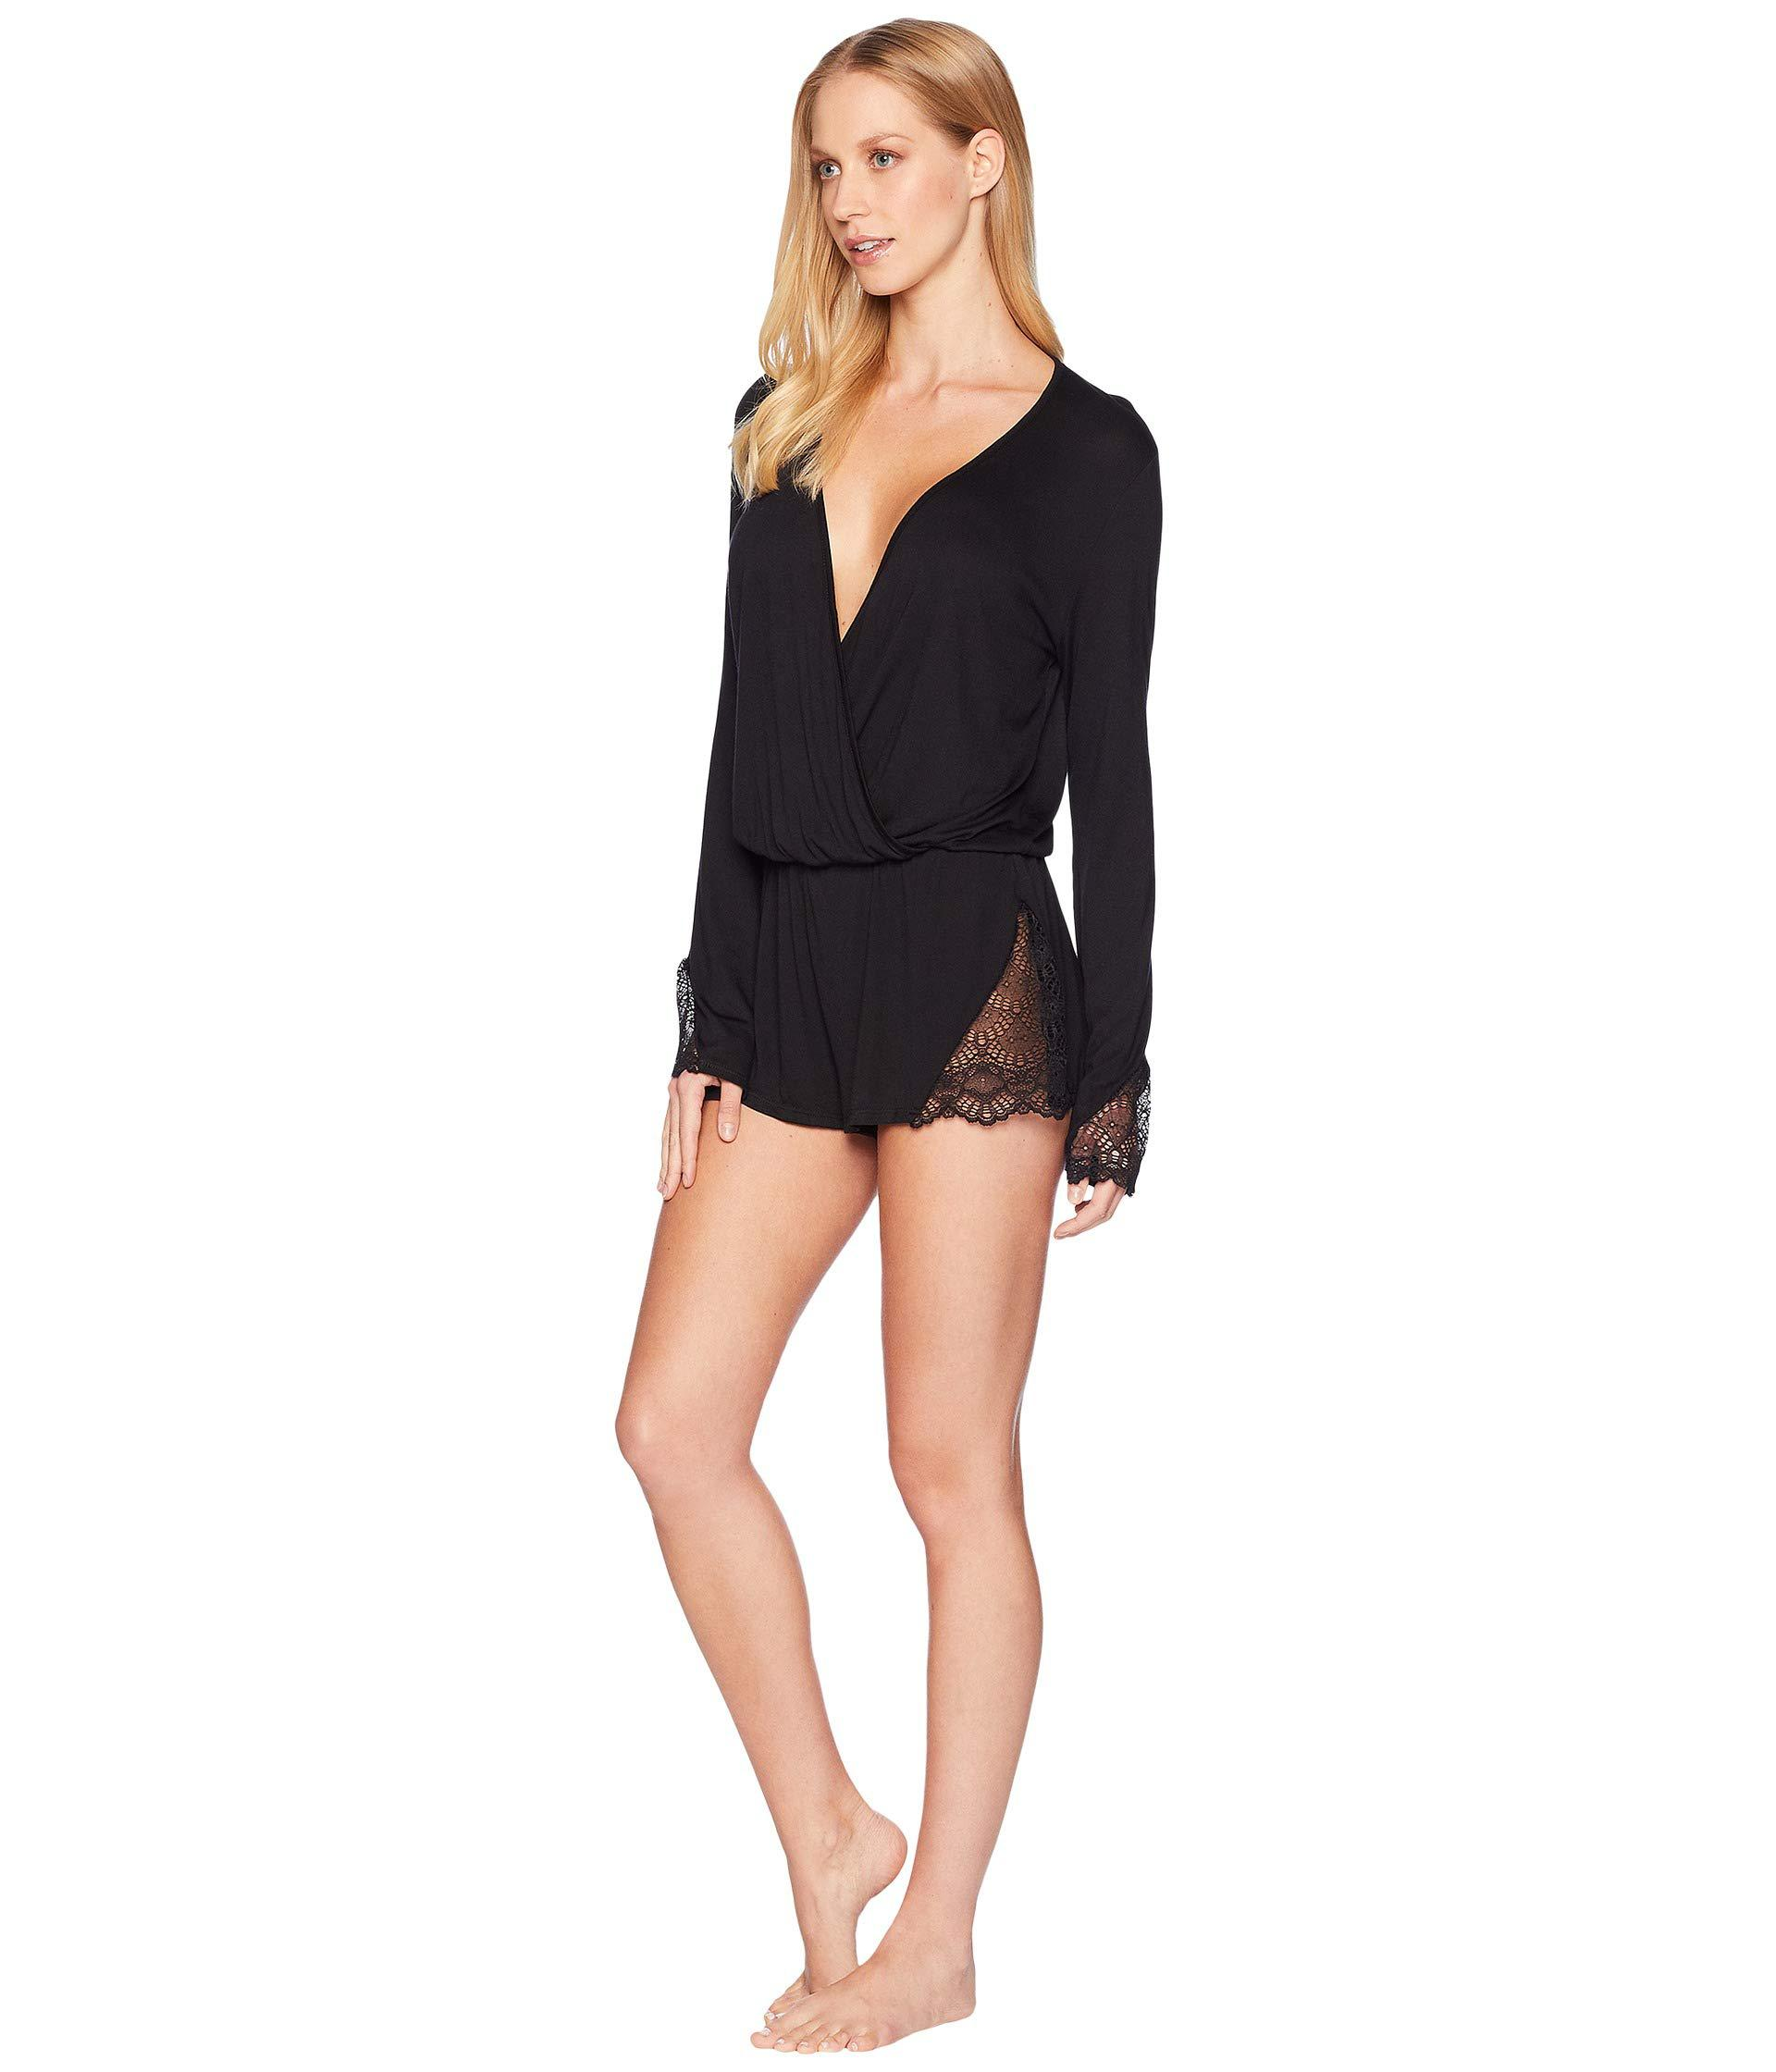 643d3cf0c4a Lyst - Only Hearts Venice Bell Sleeve Romper in Black - Save 40%